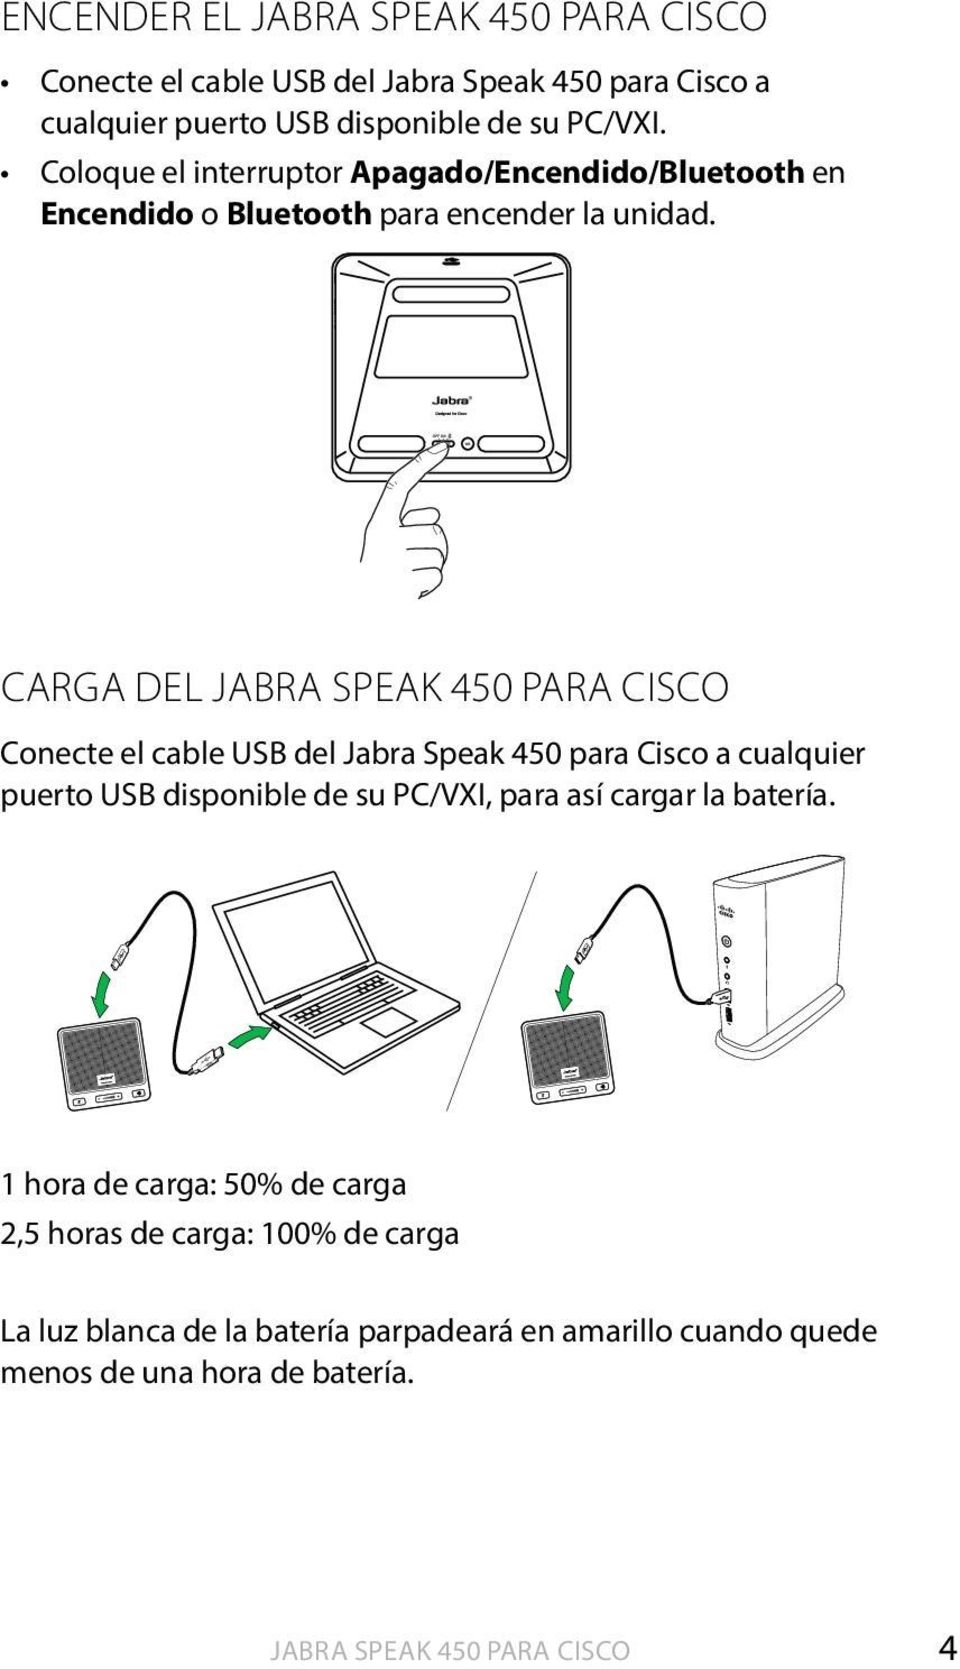 Carga del Jabra Speak 450 para Cisco Conecte el cable USB del Jabra Speak 450 para Cisco a cualquier puerto USB disponible de su PC/VXI,